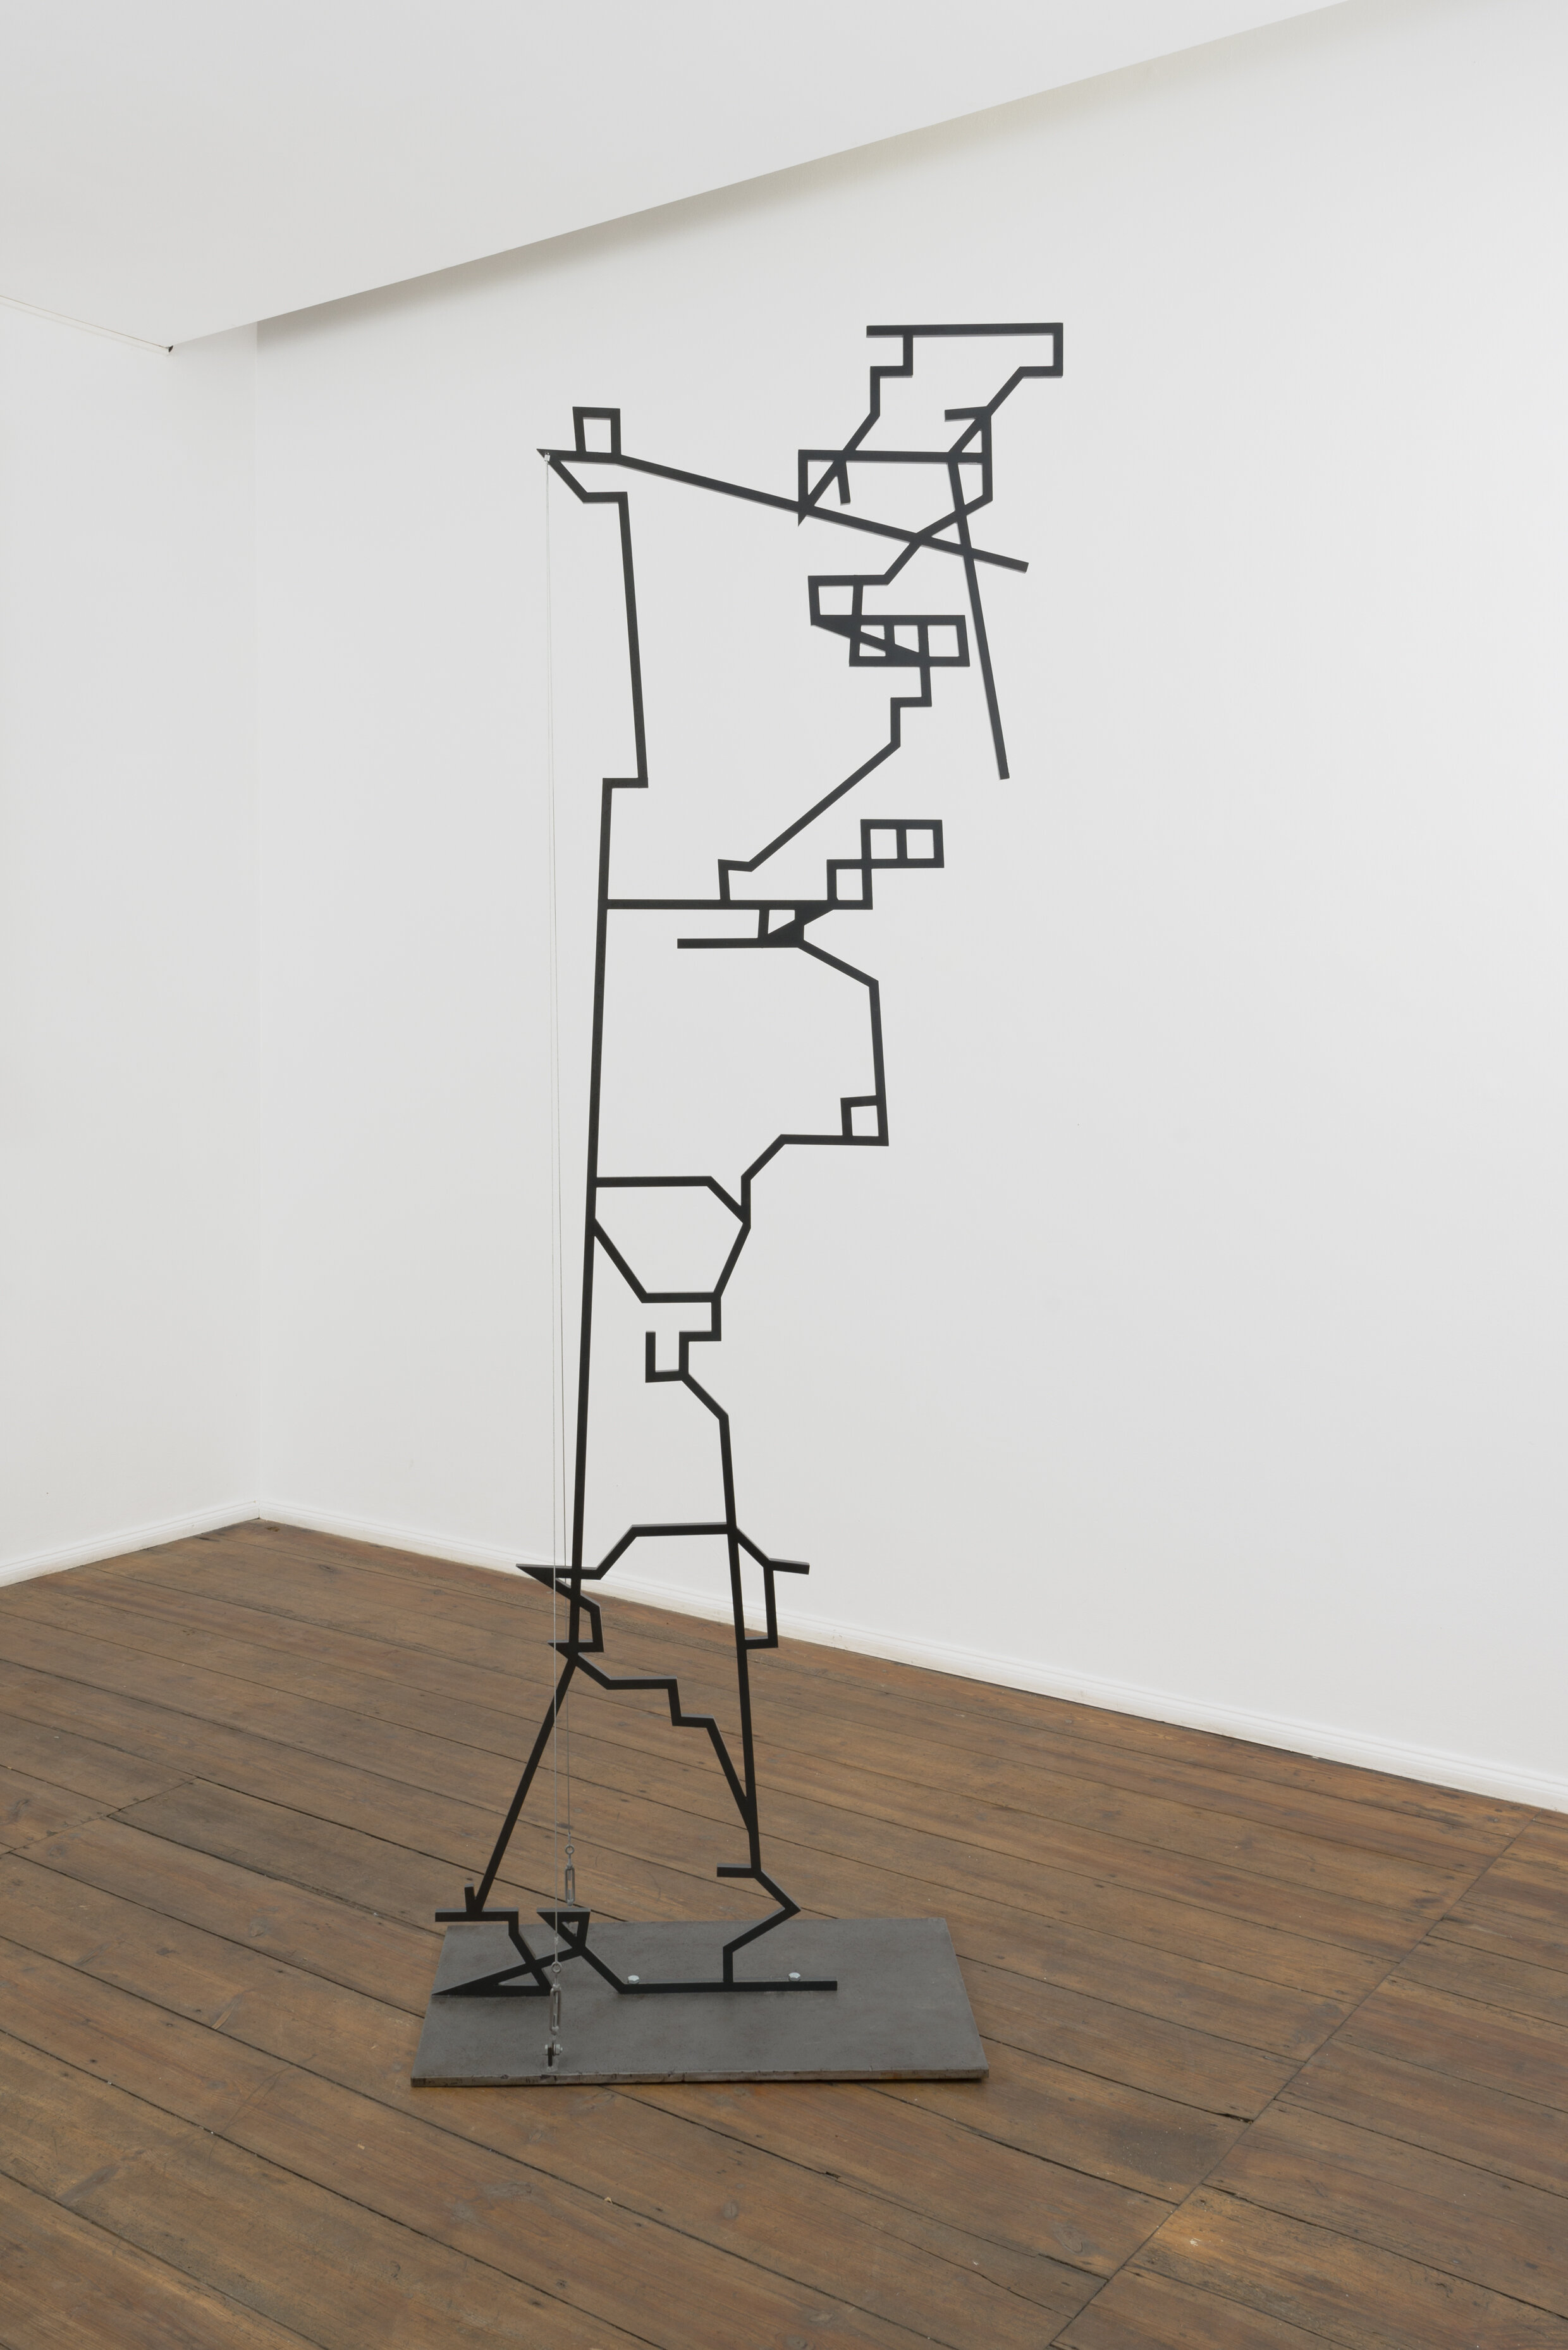 1. Phantom column (Petra, Jordan) 260x100x49cm. Steel, wire, sandblasted steel. 2014jpg.jpg